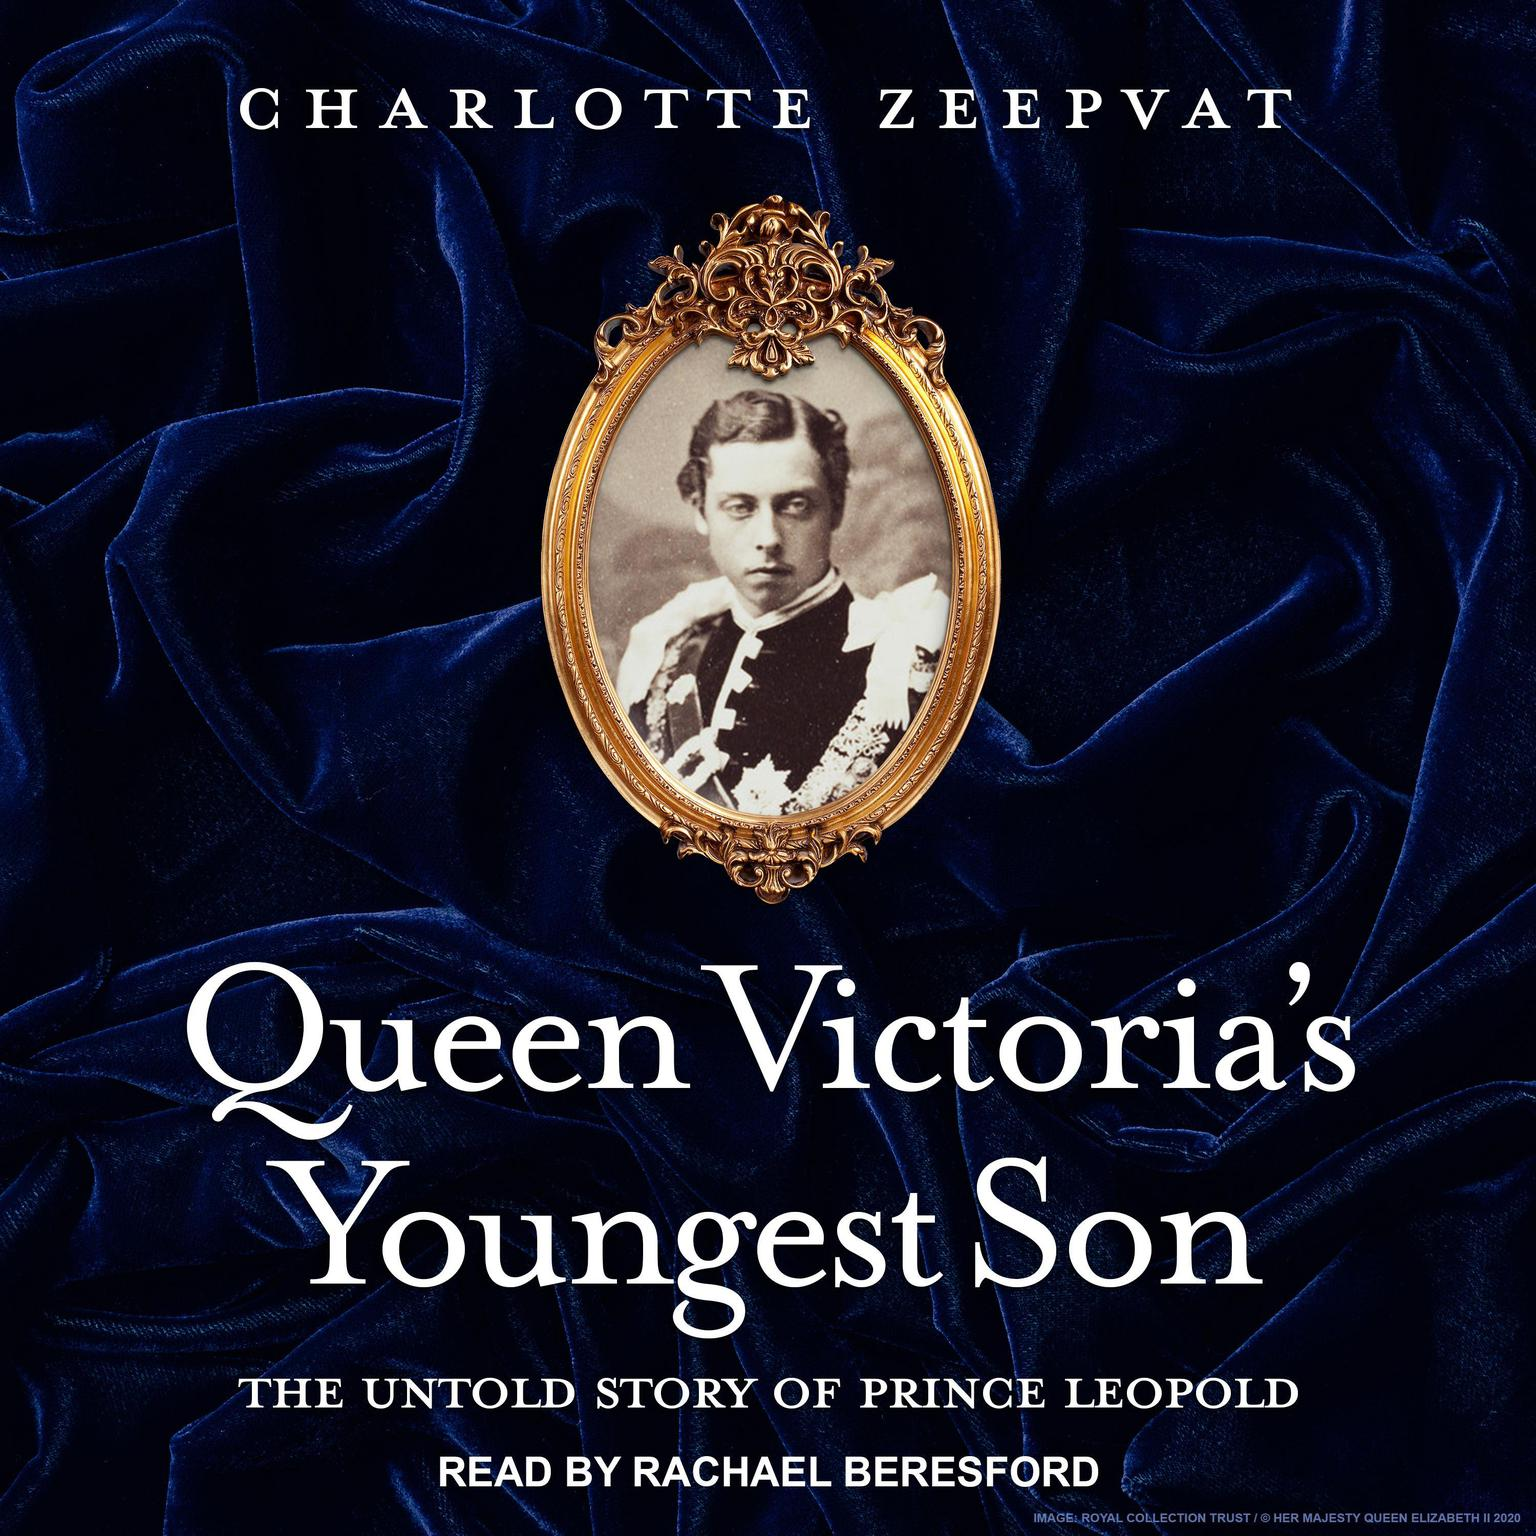 Queen Victorias Youngest Son: The Untold Story of Prince Leopold Audiobook, by Charlotte Zeepvat